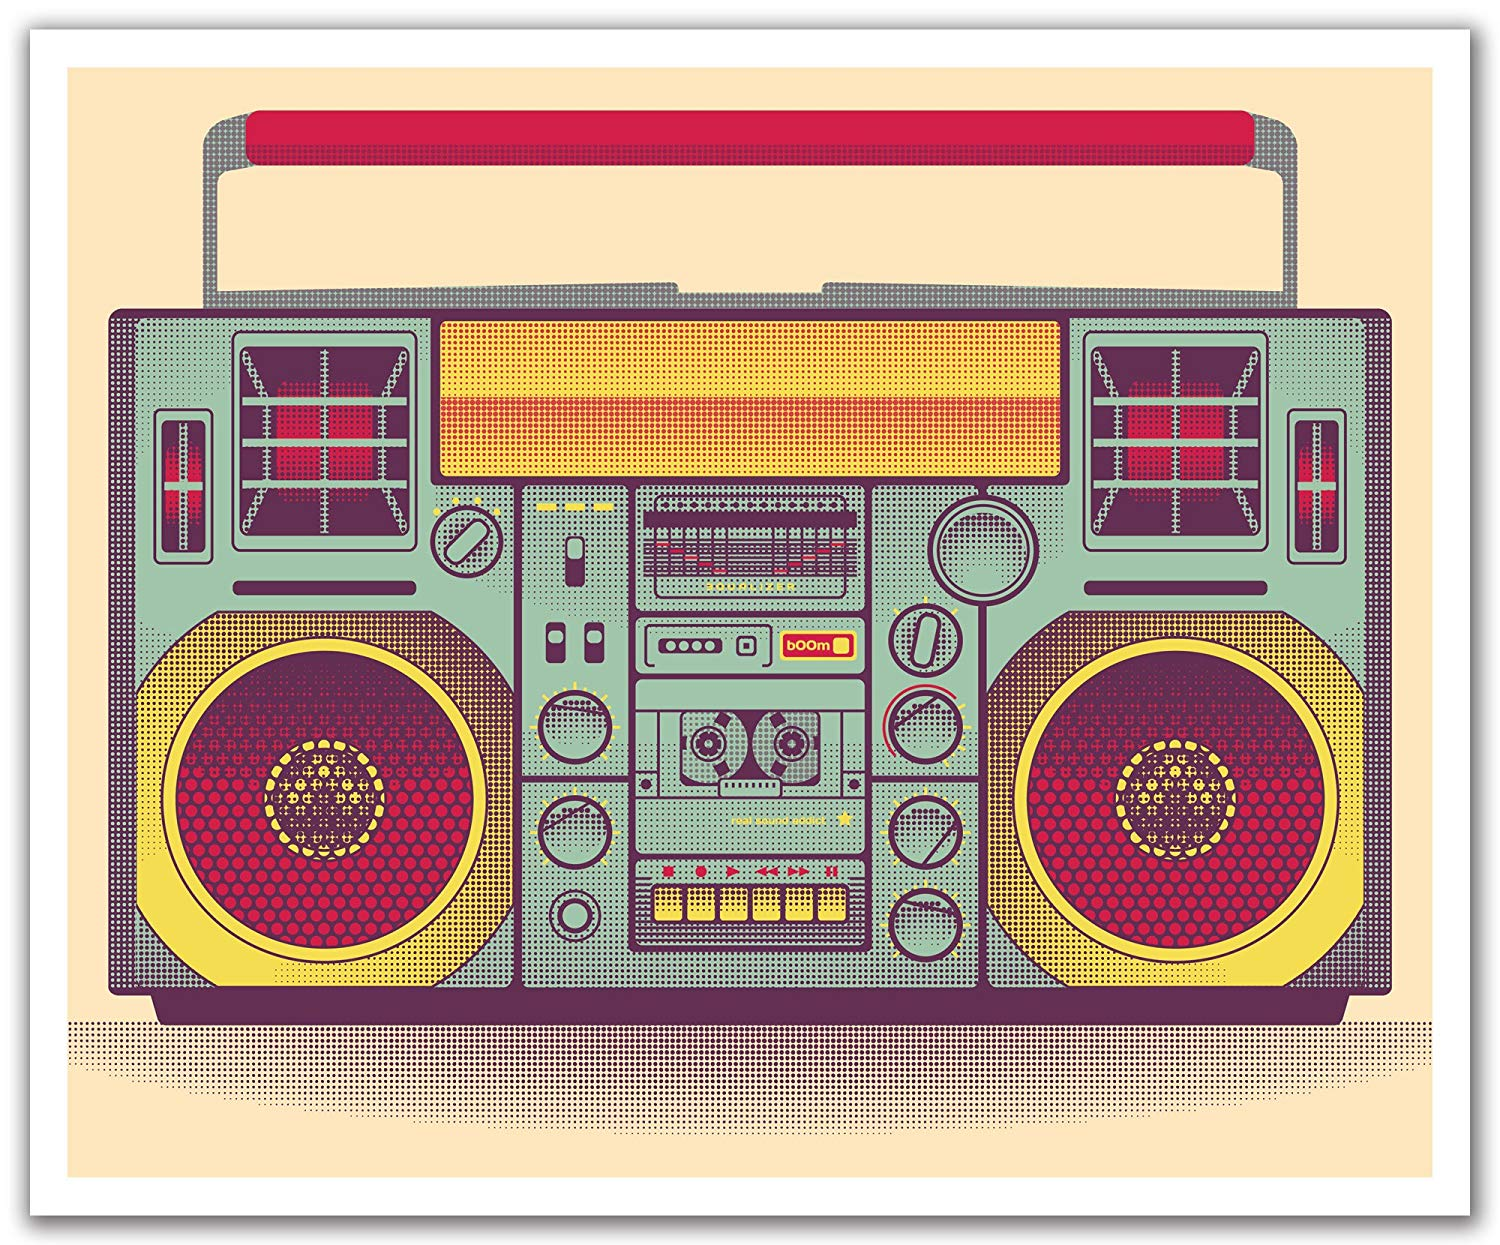 JP London Peel and Stick Removable Wall Decal Sticker Mural Retro Ghetto Blaster Breakdance Rap Steampunk 24 by 19.75-Inch